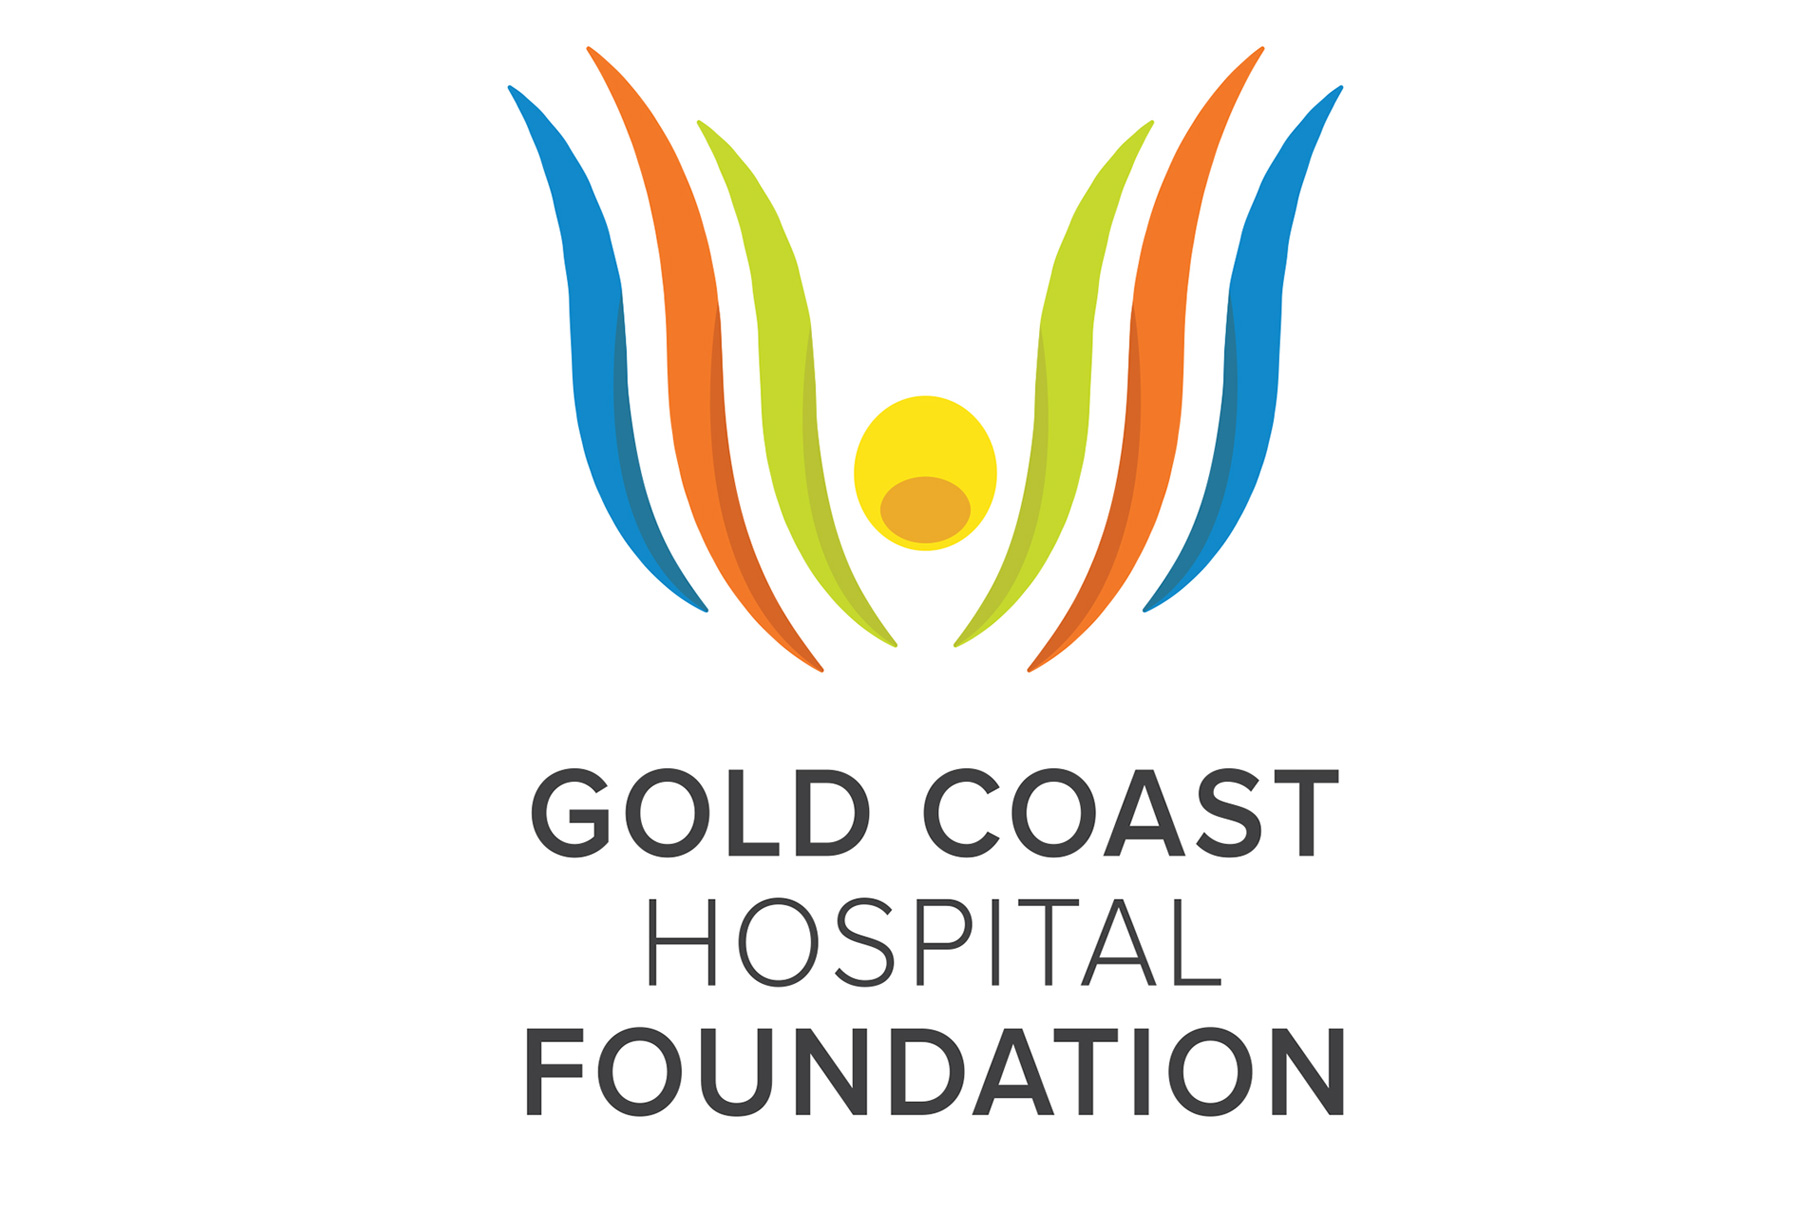 Over the past few weeks, Creative Minds have been collaborating with the amazing fundraising team at the Gold Coast University Hospital. Our primary purpose for reaching out to the fundraising team was to initiate a fundraising scheme for the Newborn Intensive Care Unit (NICU) & Special Care Unit (SCU) at the Gold Coast University Hospital. […]